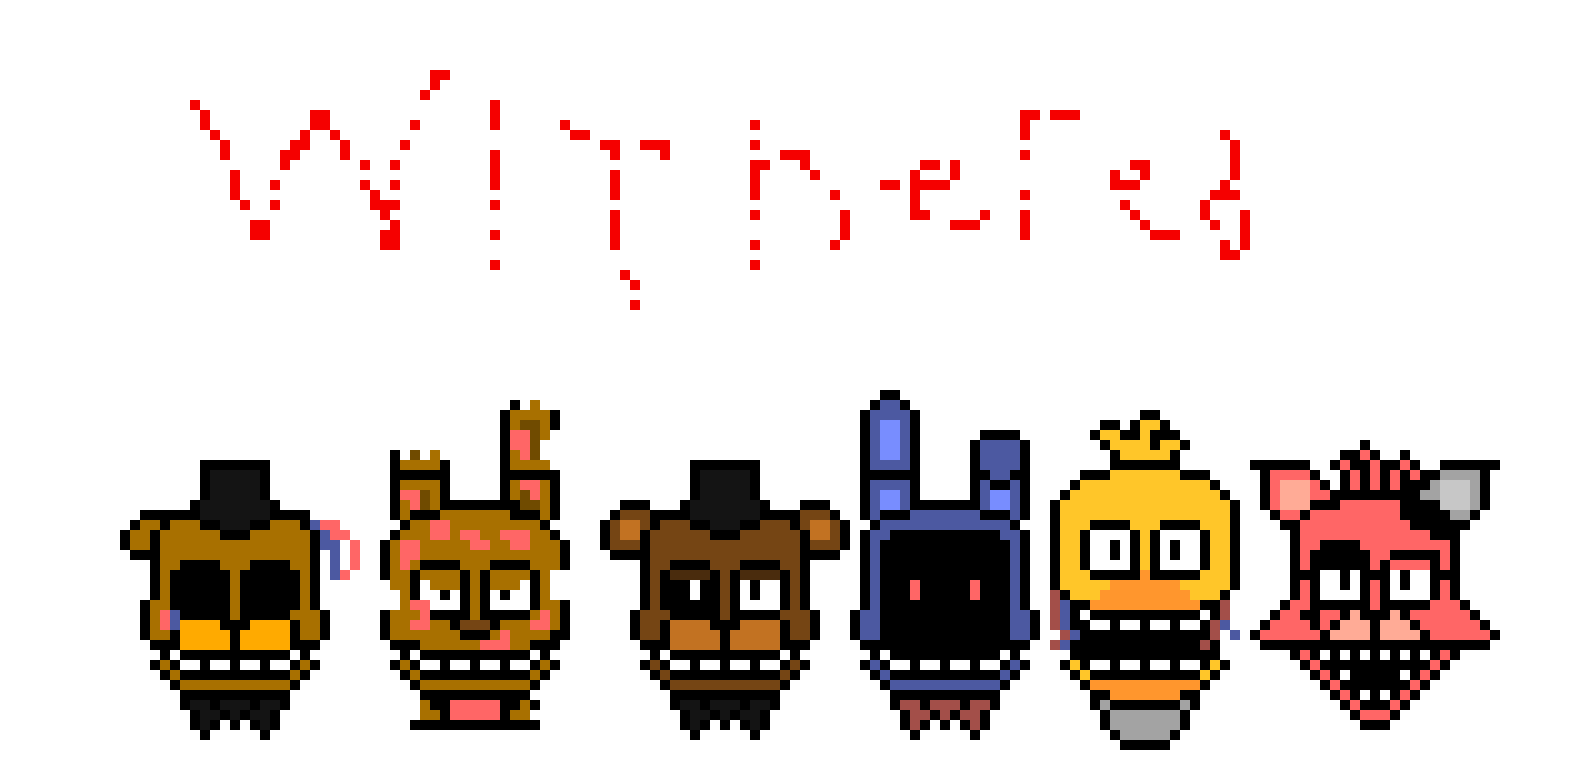 FNAF 2 Un-Withereds Sprites | Pixel Art Maker